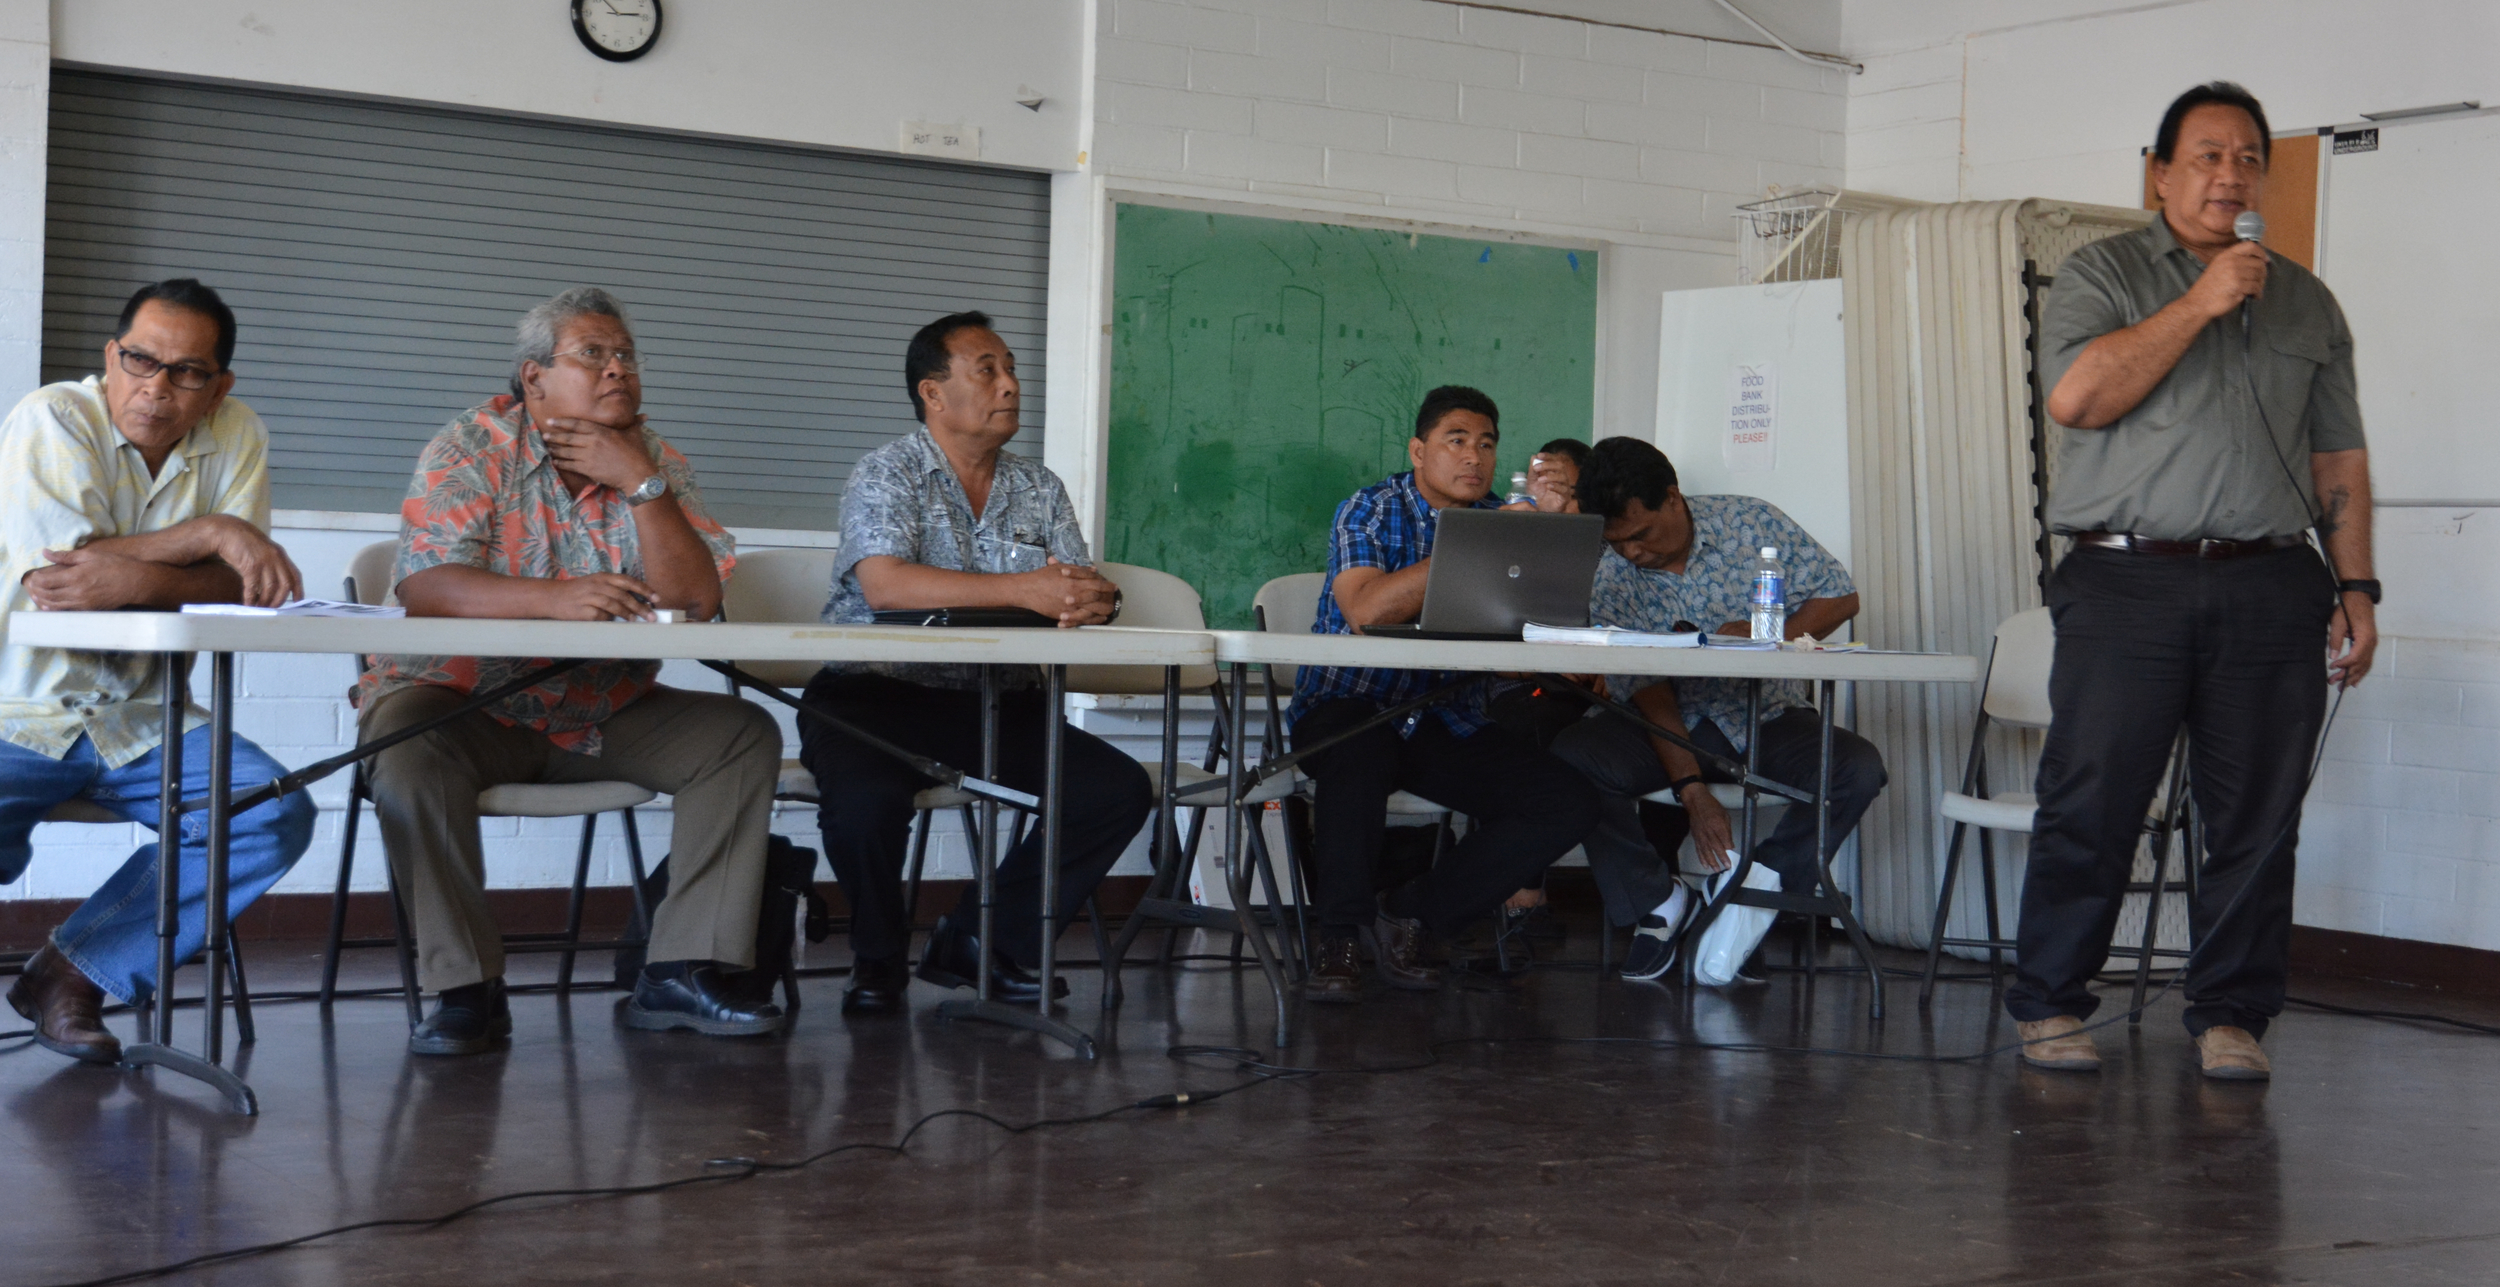 Mark Mailo gives his opening remarks at the Honolulu hearing. (L-R; Jacob Esah, Winiplat Bisalen, Carsom Enlet, Johnny Meippen, Julio Marar, Mark Mailo. Not pictured: Sabino Asor.)